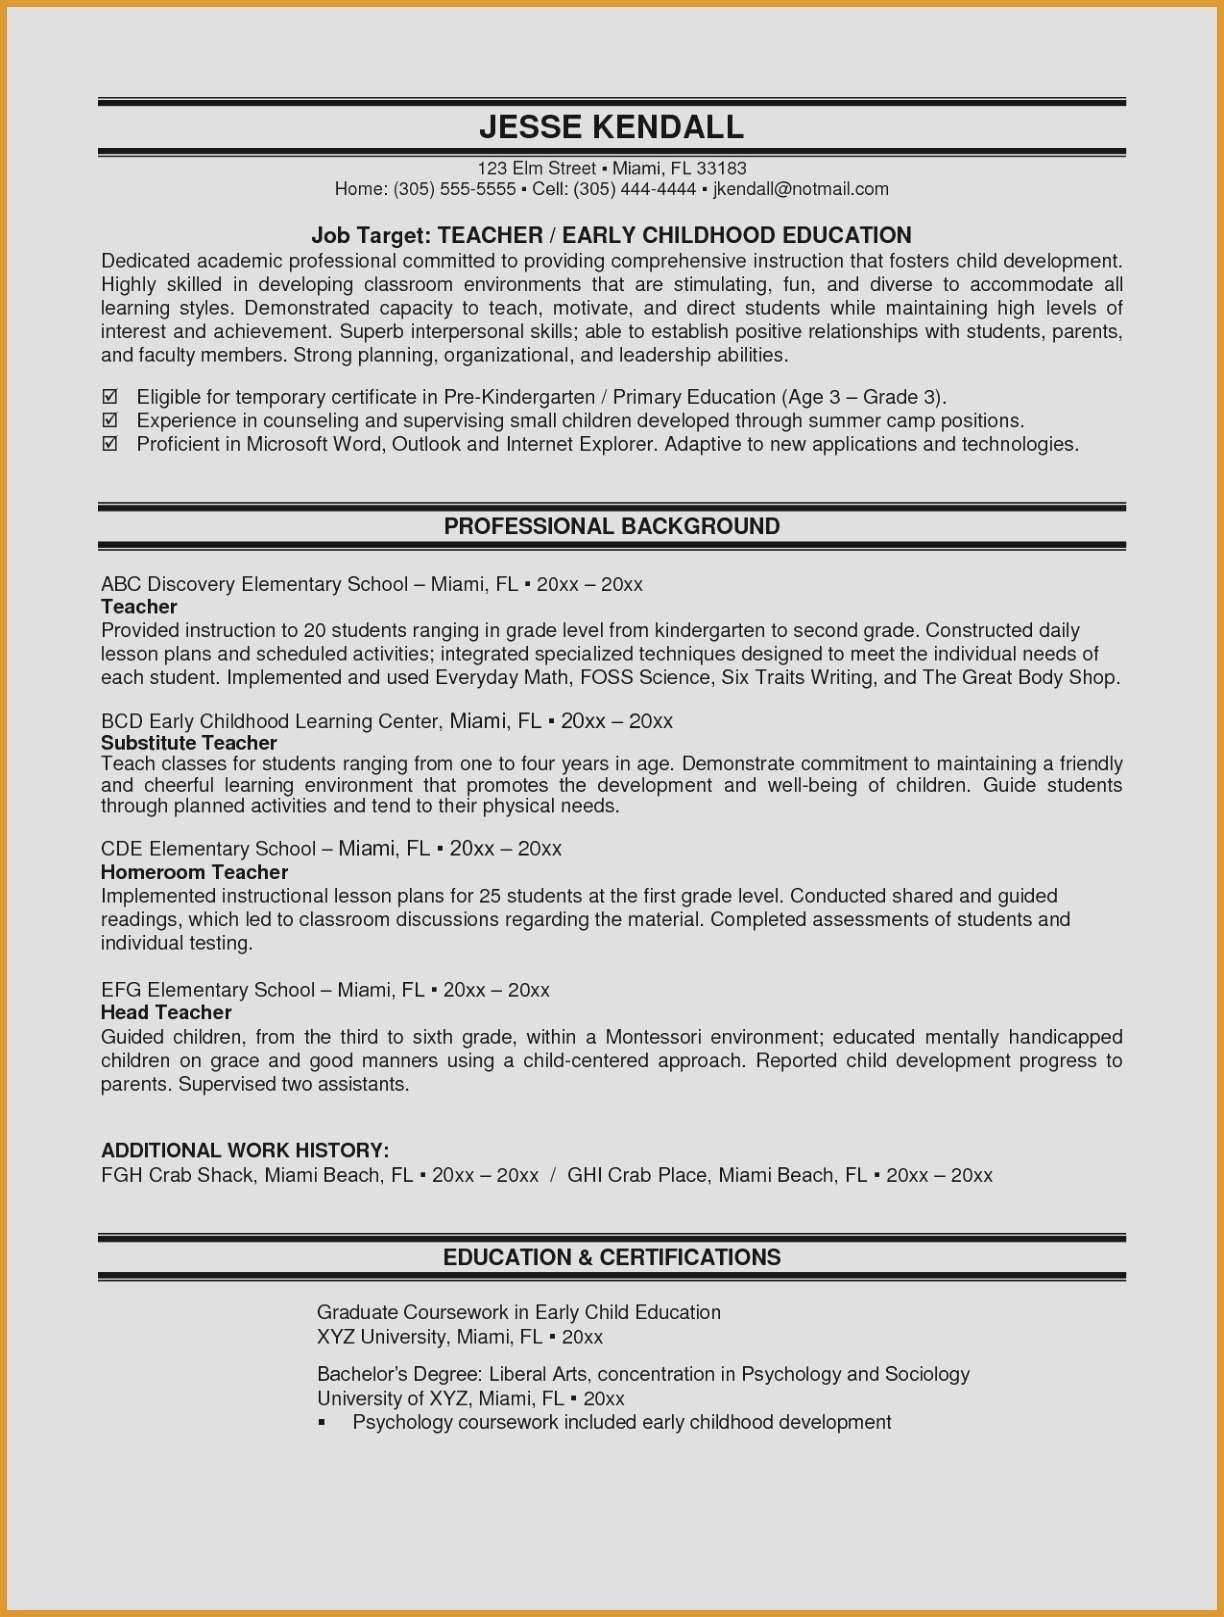 Substitute Teacher Job Description for Resume - 25 Lovely Teacher Job Description for Resume